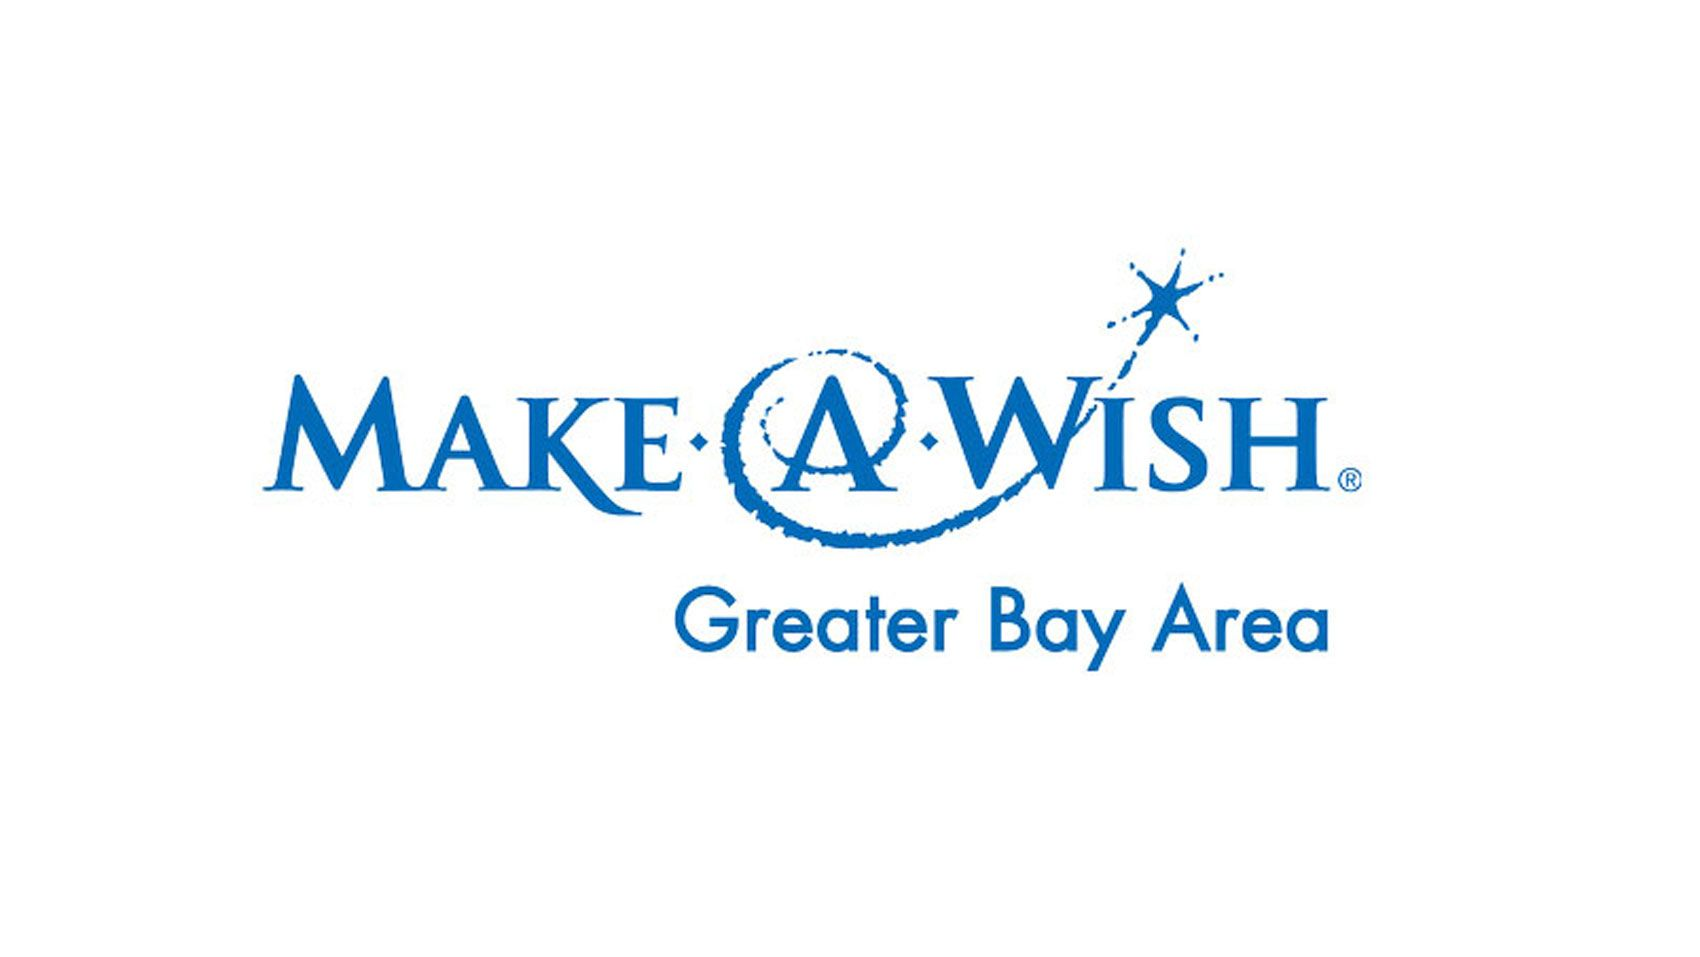 040218-MakeaWish-Logo-2